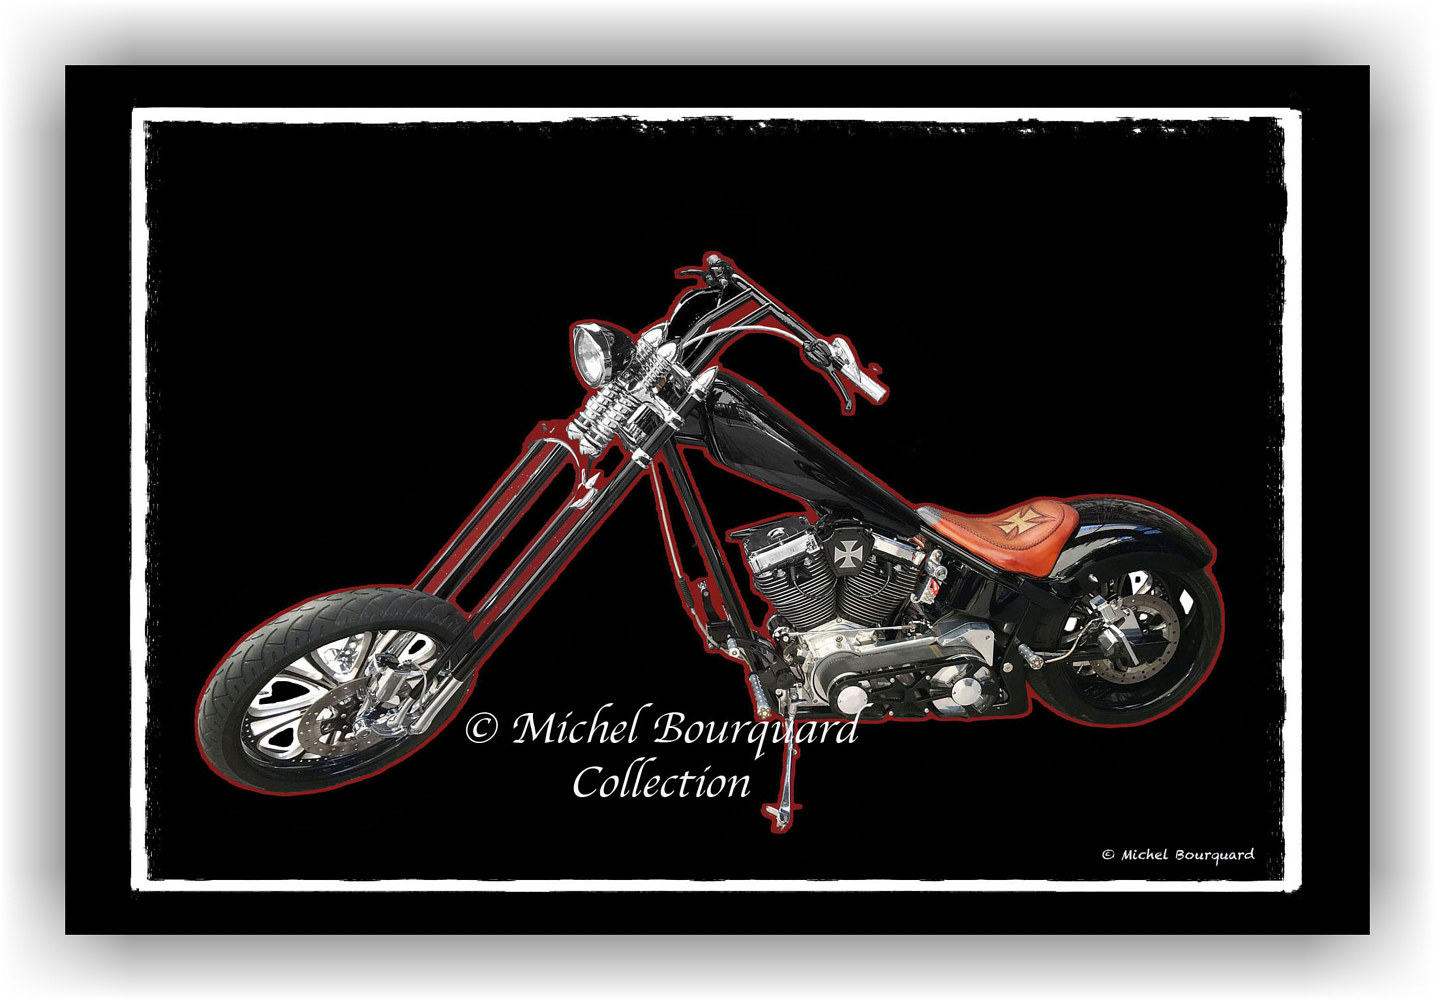 086-Motocycle Pop  Easy rider in BW -the black and red line copy by Michel Bourquard